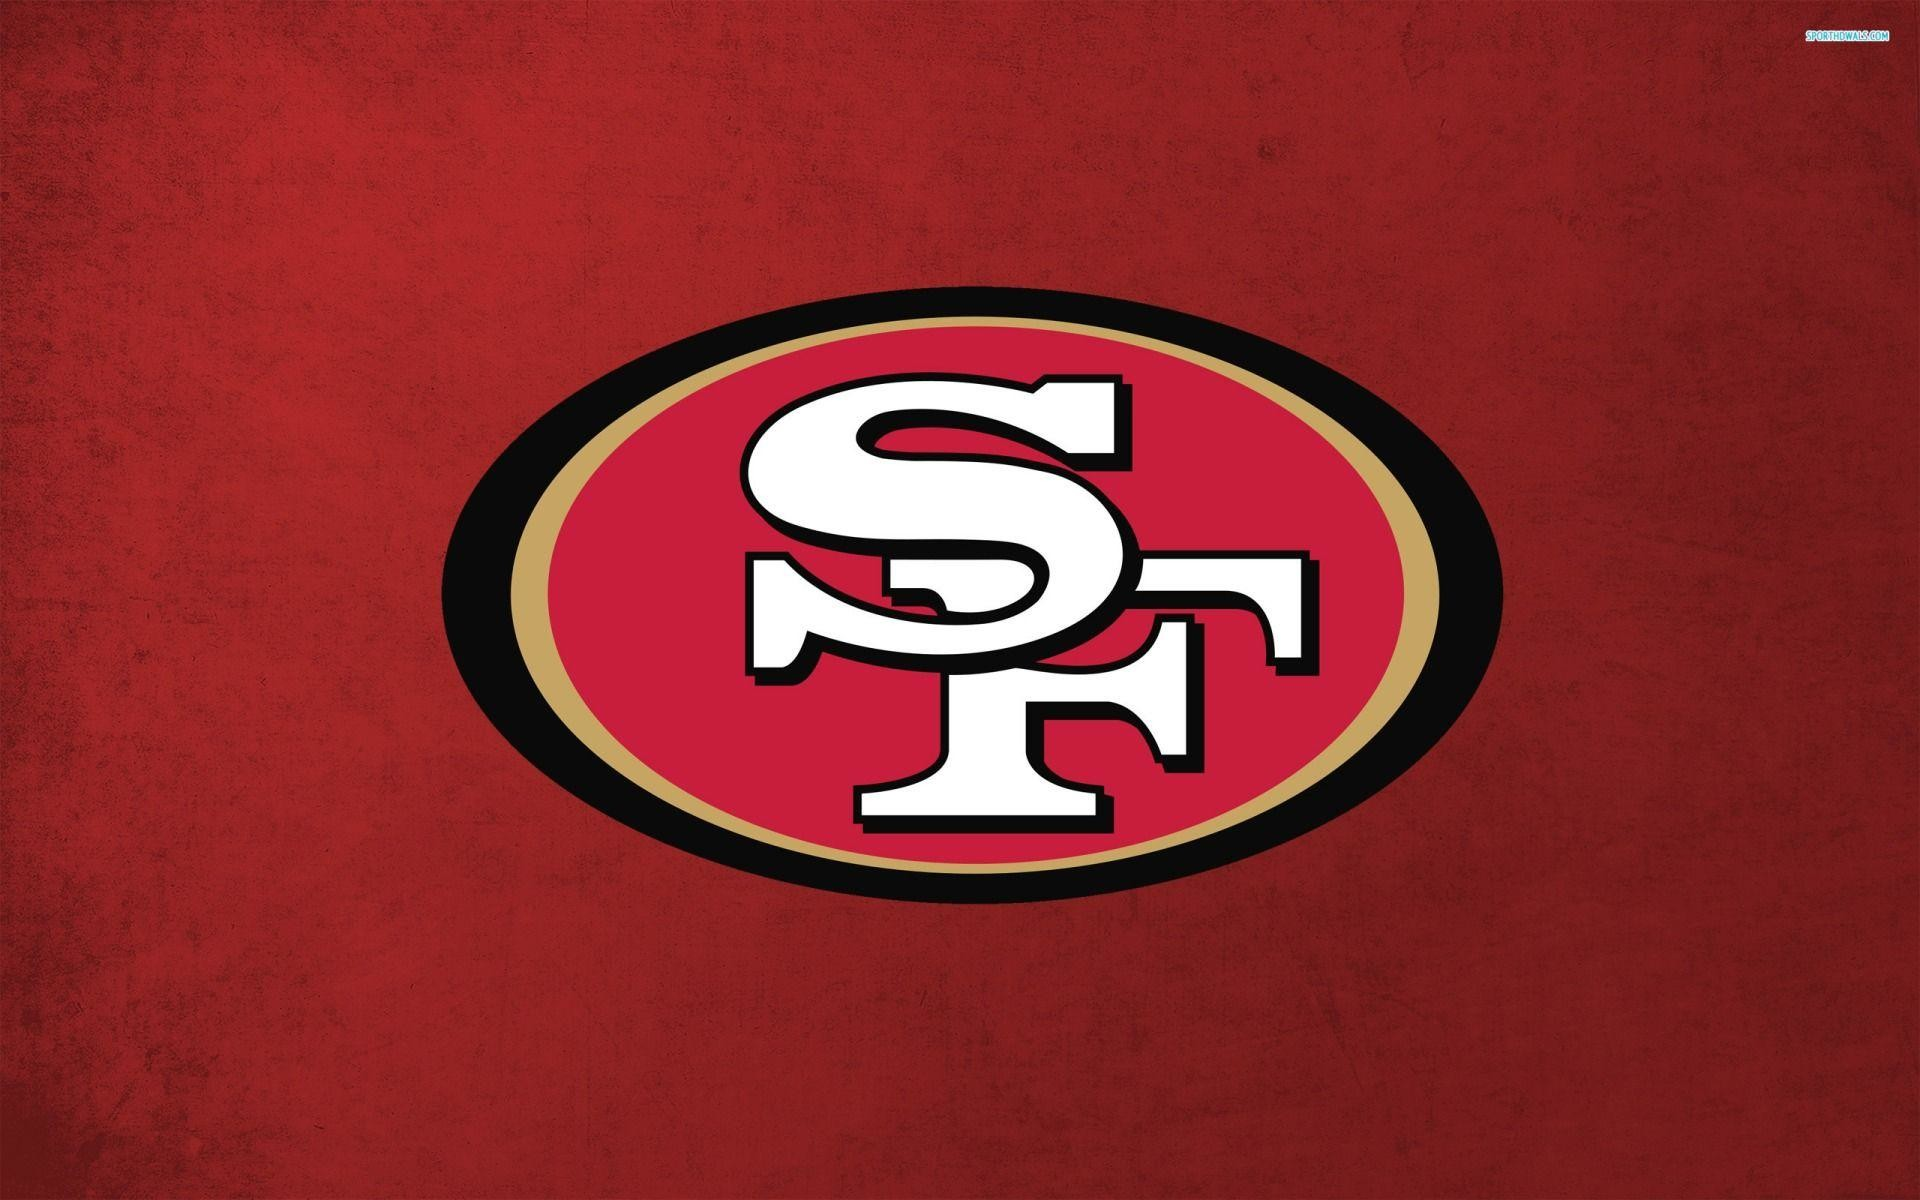 1920x1200 49ers Logo 2013 Wallpaper | Free HD Wallpaper 2013 Desktop Background